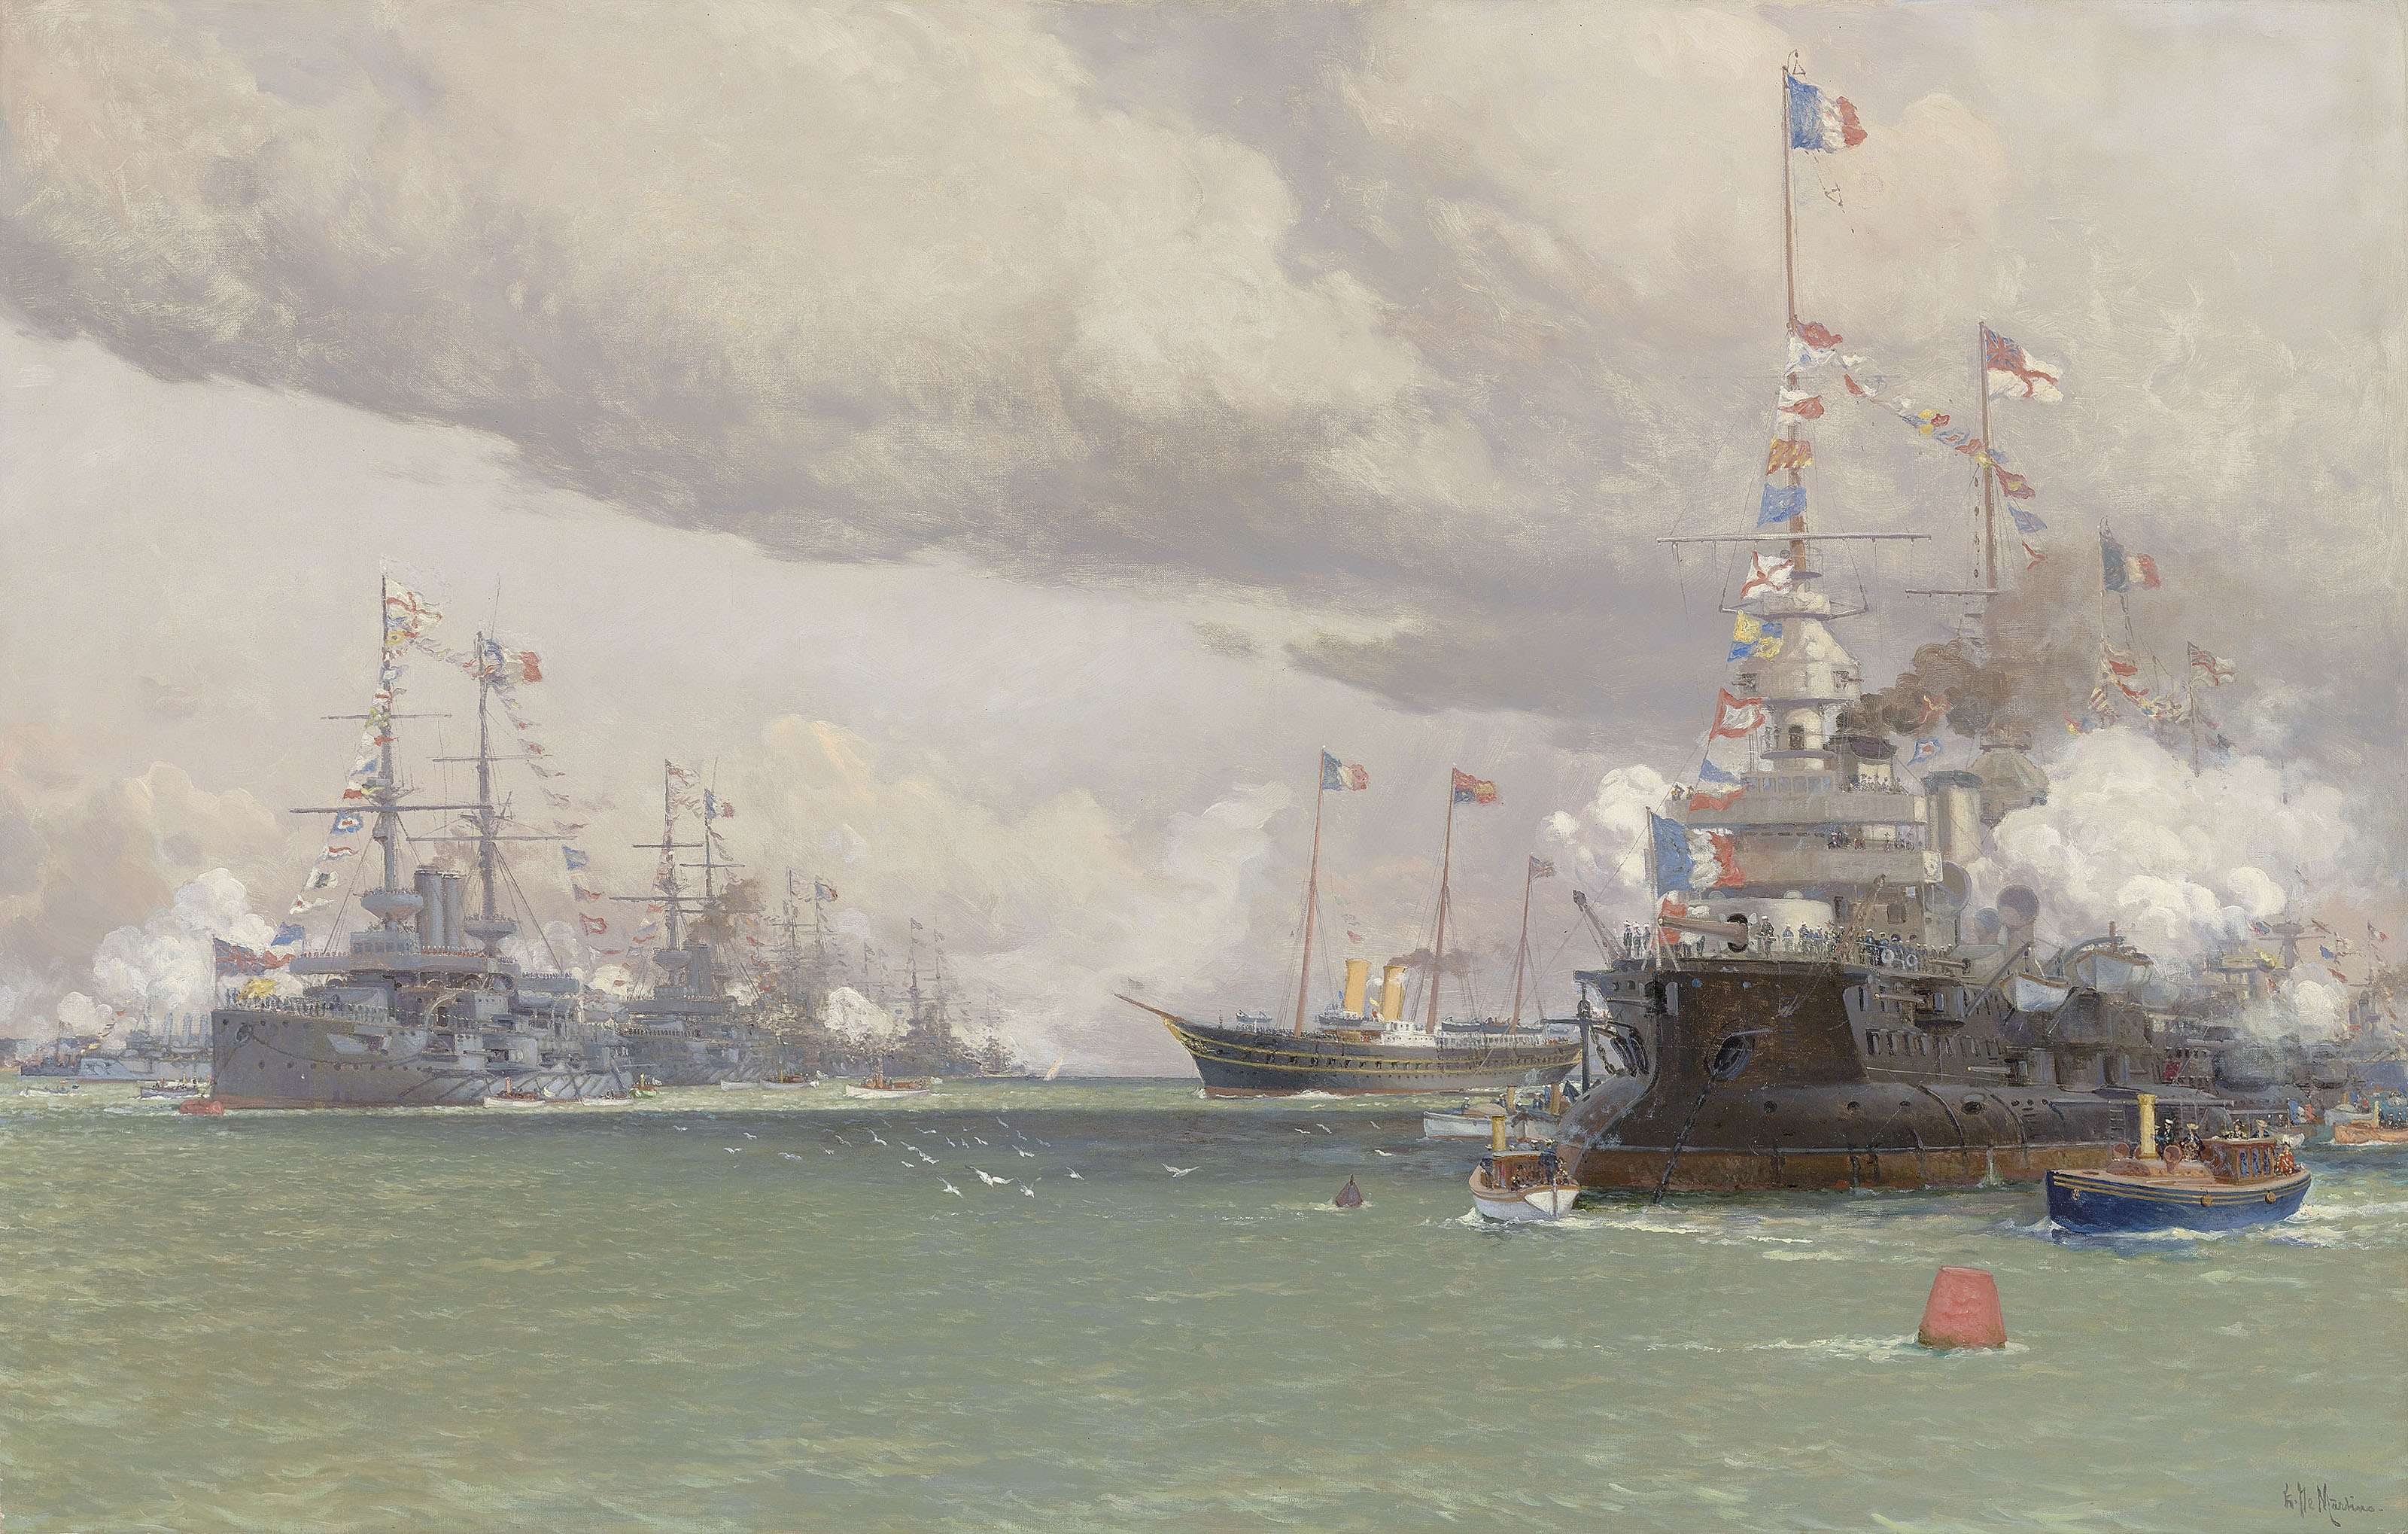 L'Entente Cordiale: The Royal Yacht Victoria & Albert III reviewing the Anglo-French fleet in Cowes Road, 1905